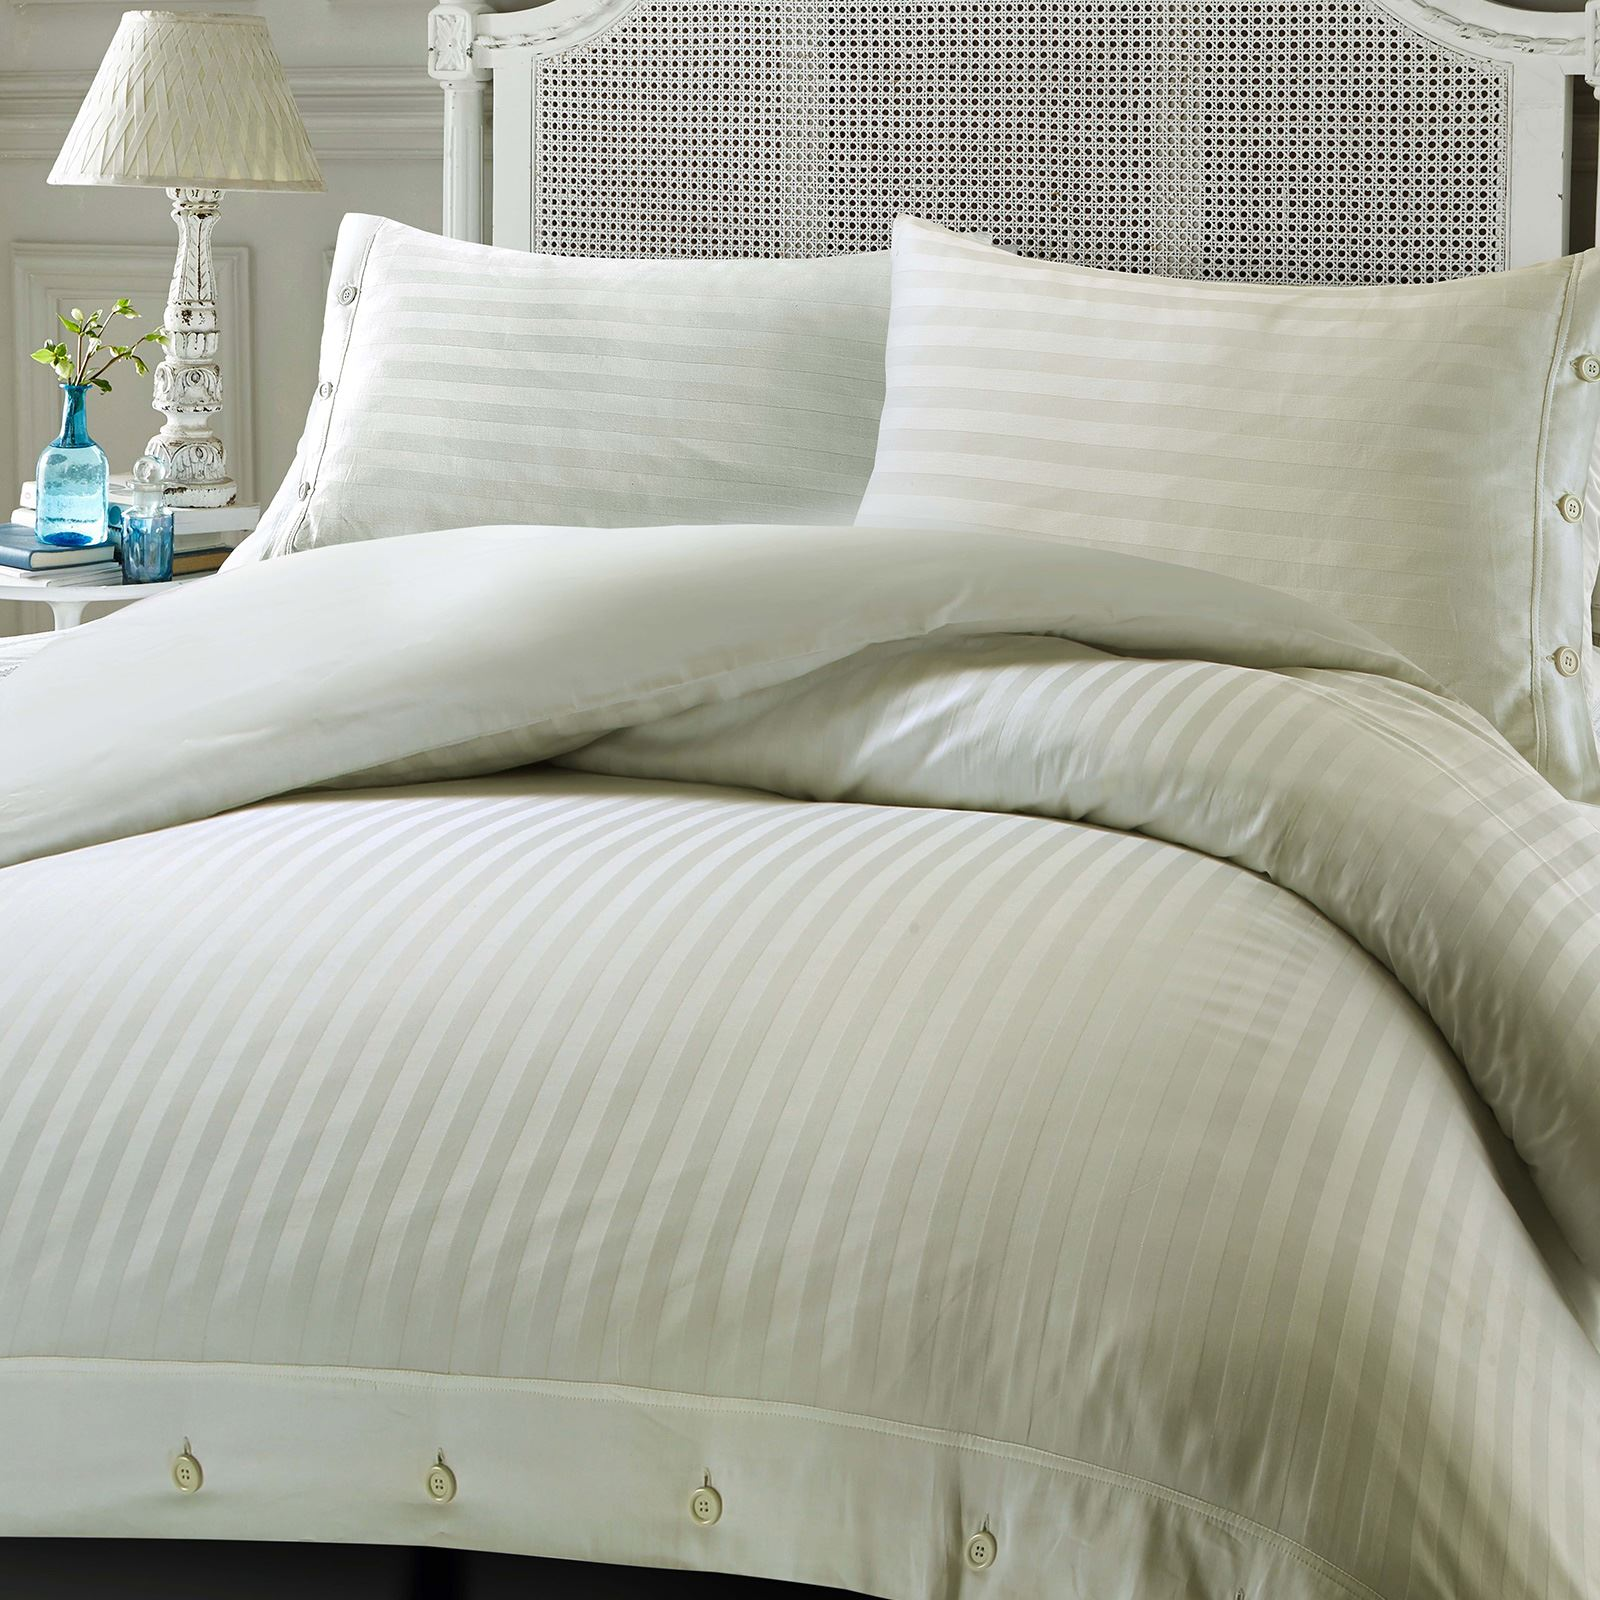 Bedeck's commitment to creativity and quality have allowed us to become one of the worlds leading luxury bedding suppliers.